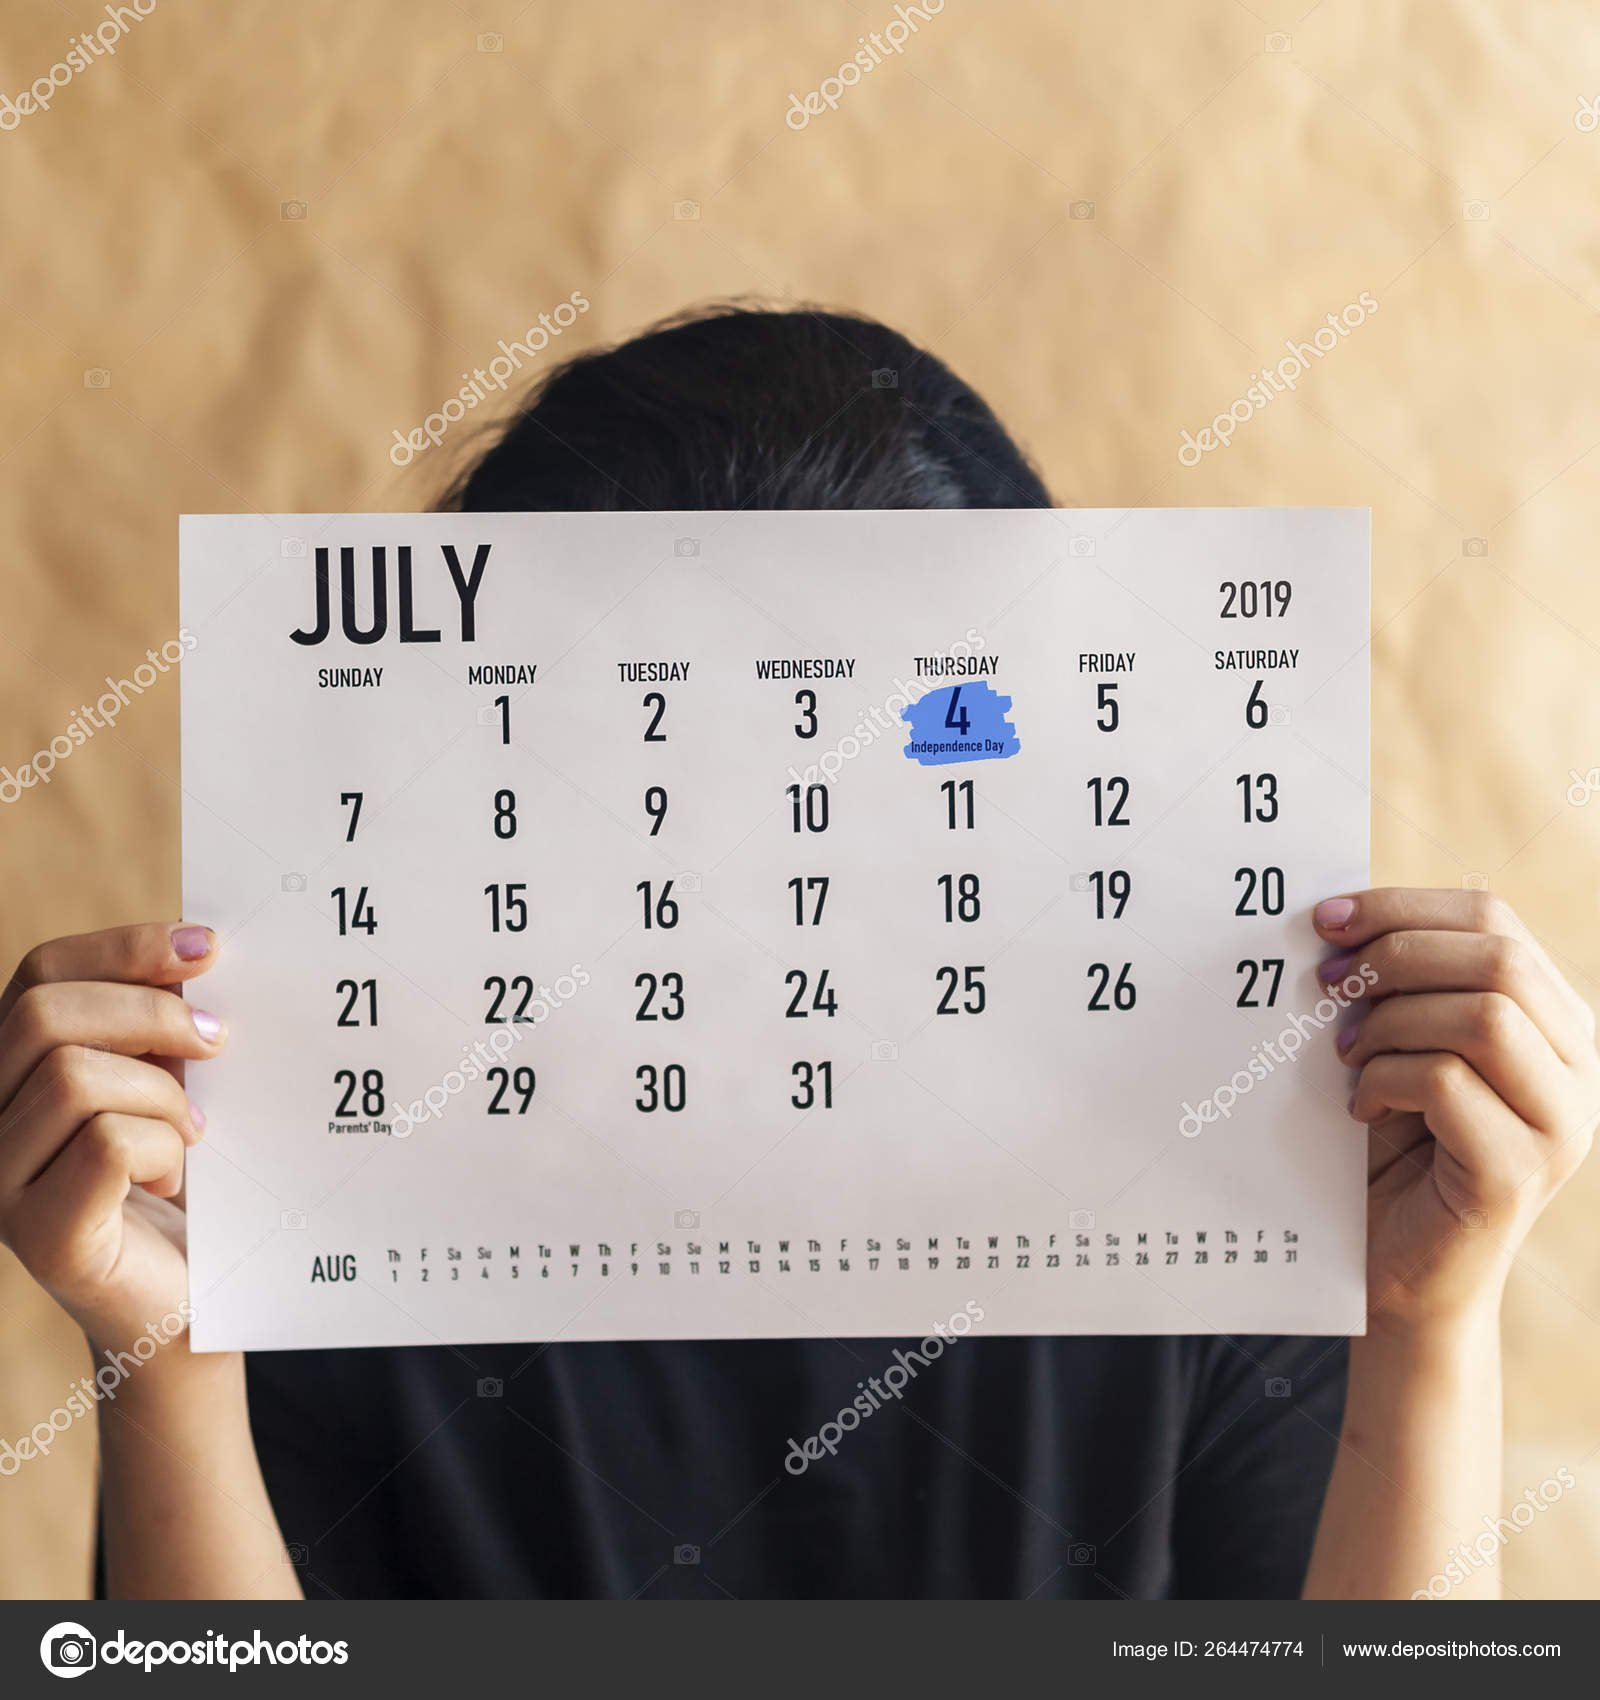 Woman Holding Calendar With Marked Day July 4, 2019 - Us July 4 2019 Calendar